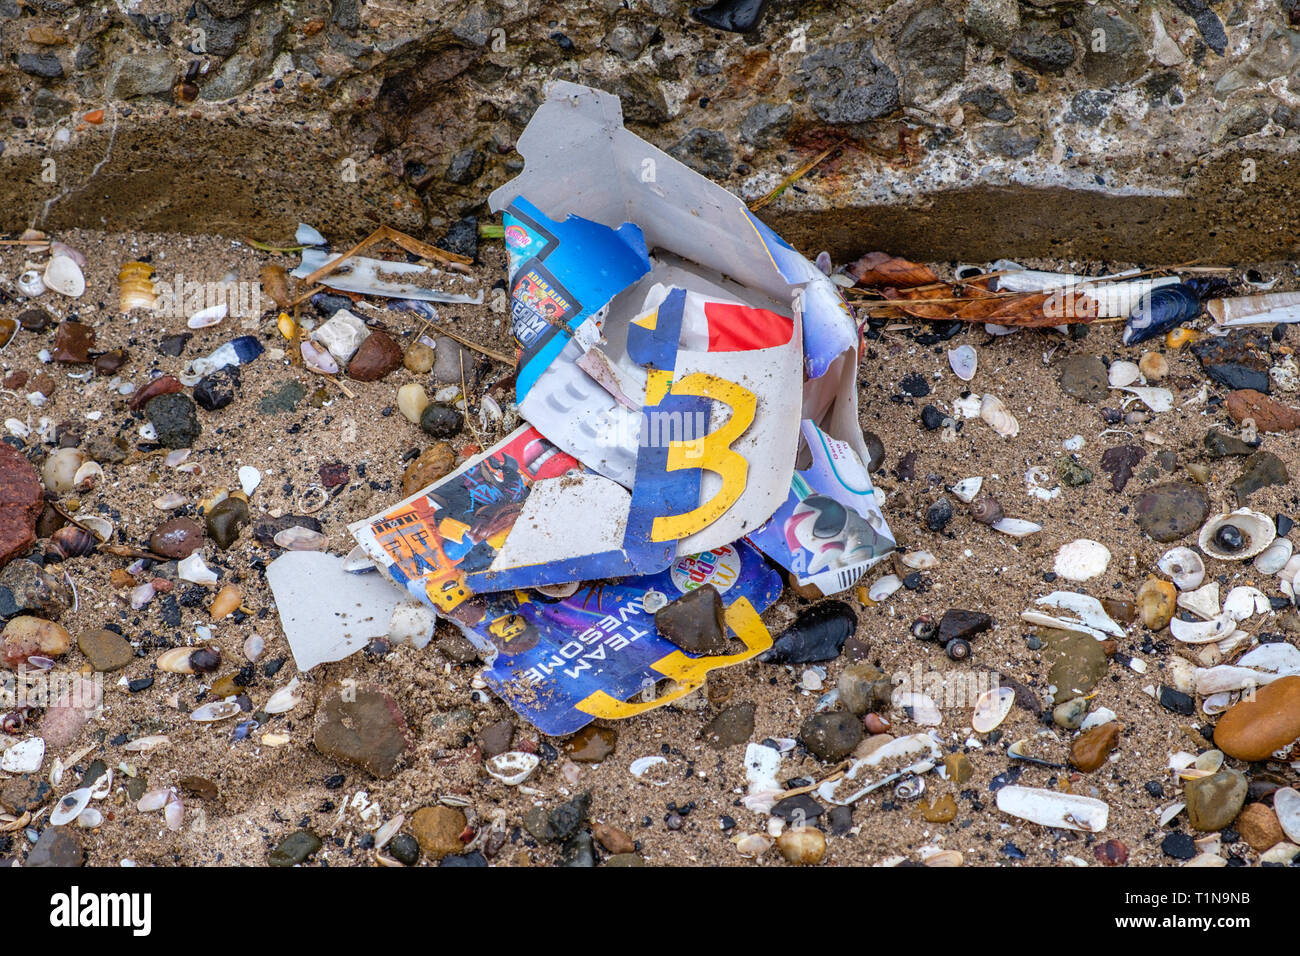 Irvine, Scotland, UK - March 18, 2019: Environmental image of Waste with some cardboard from McDonalds and plastic waste being discarded on the beach  - Stock Image